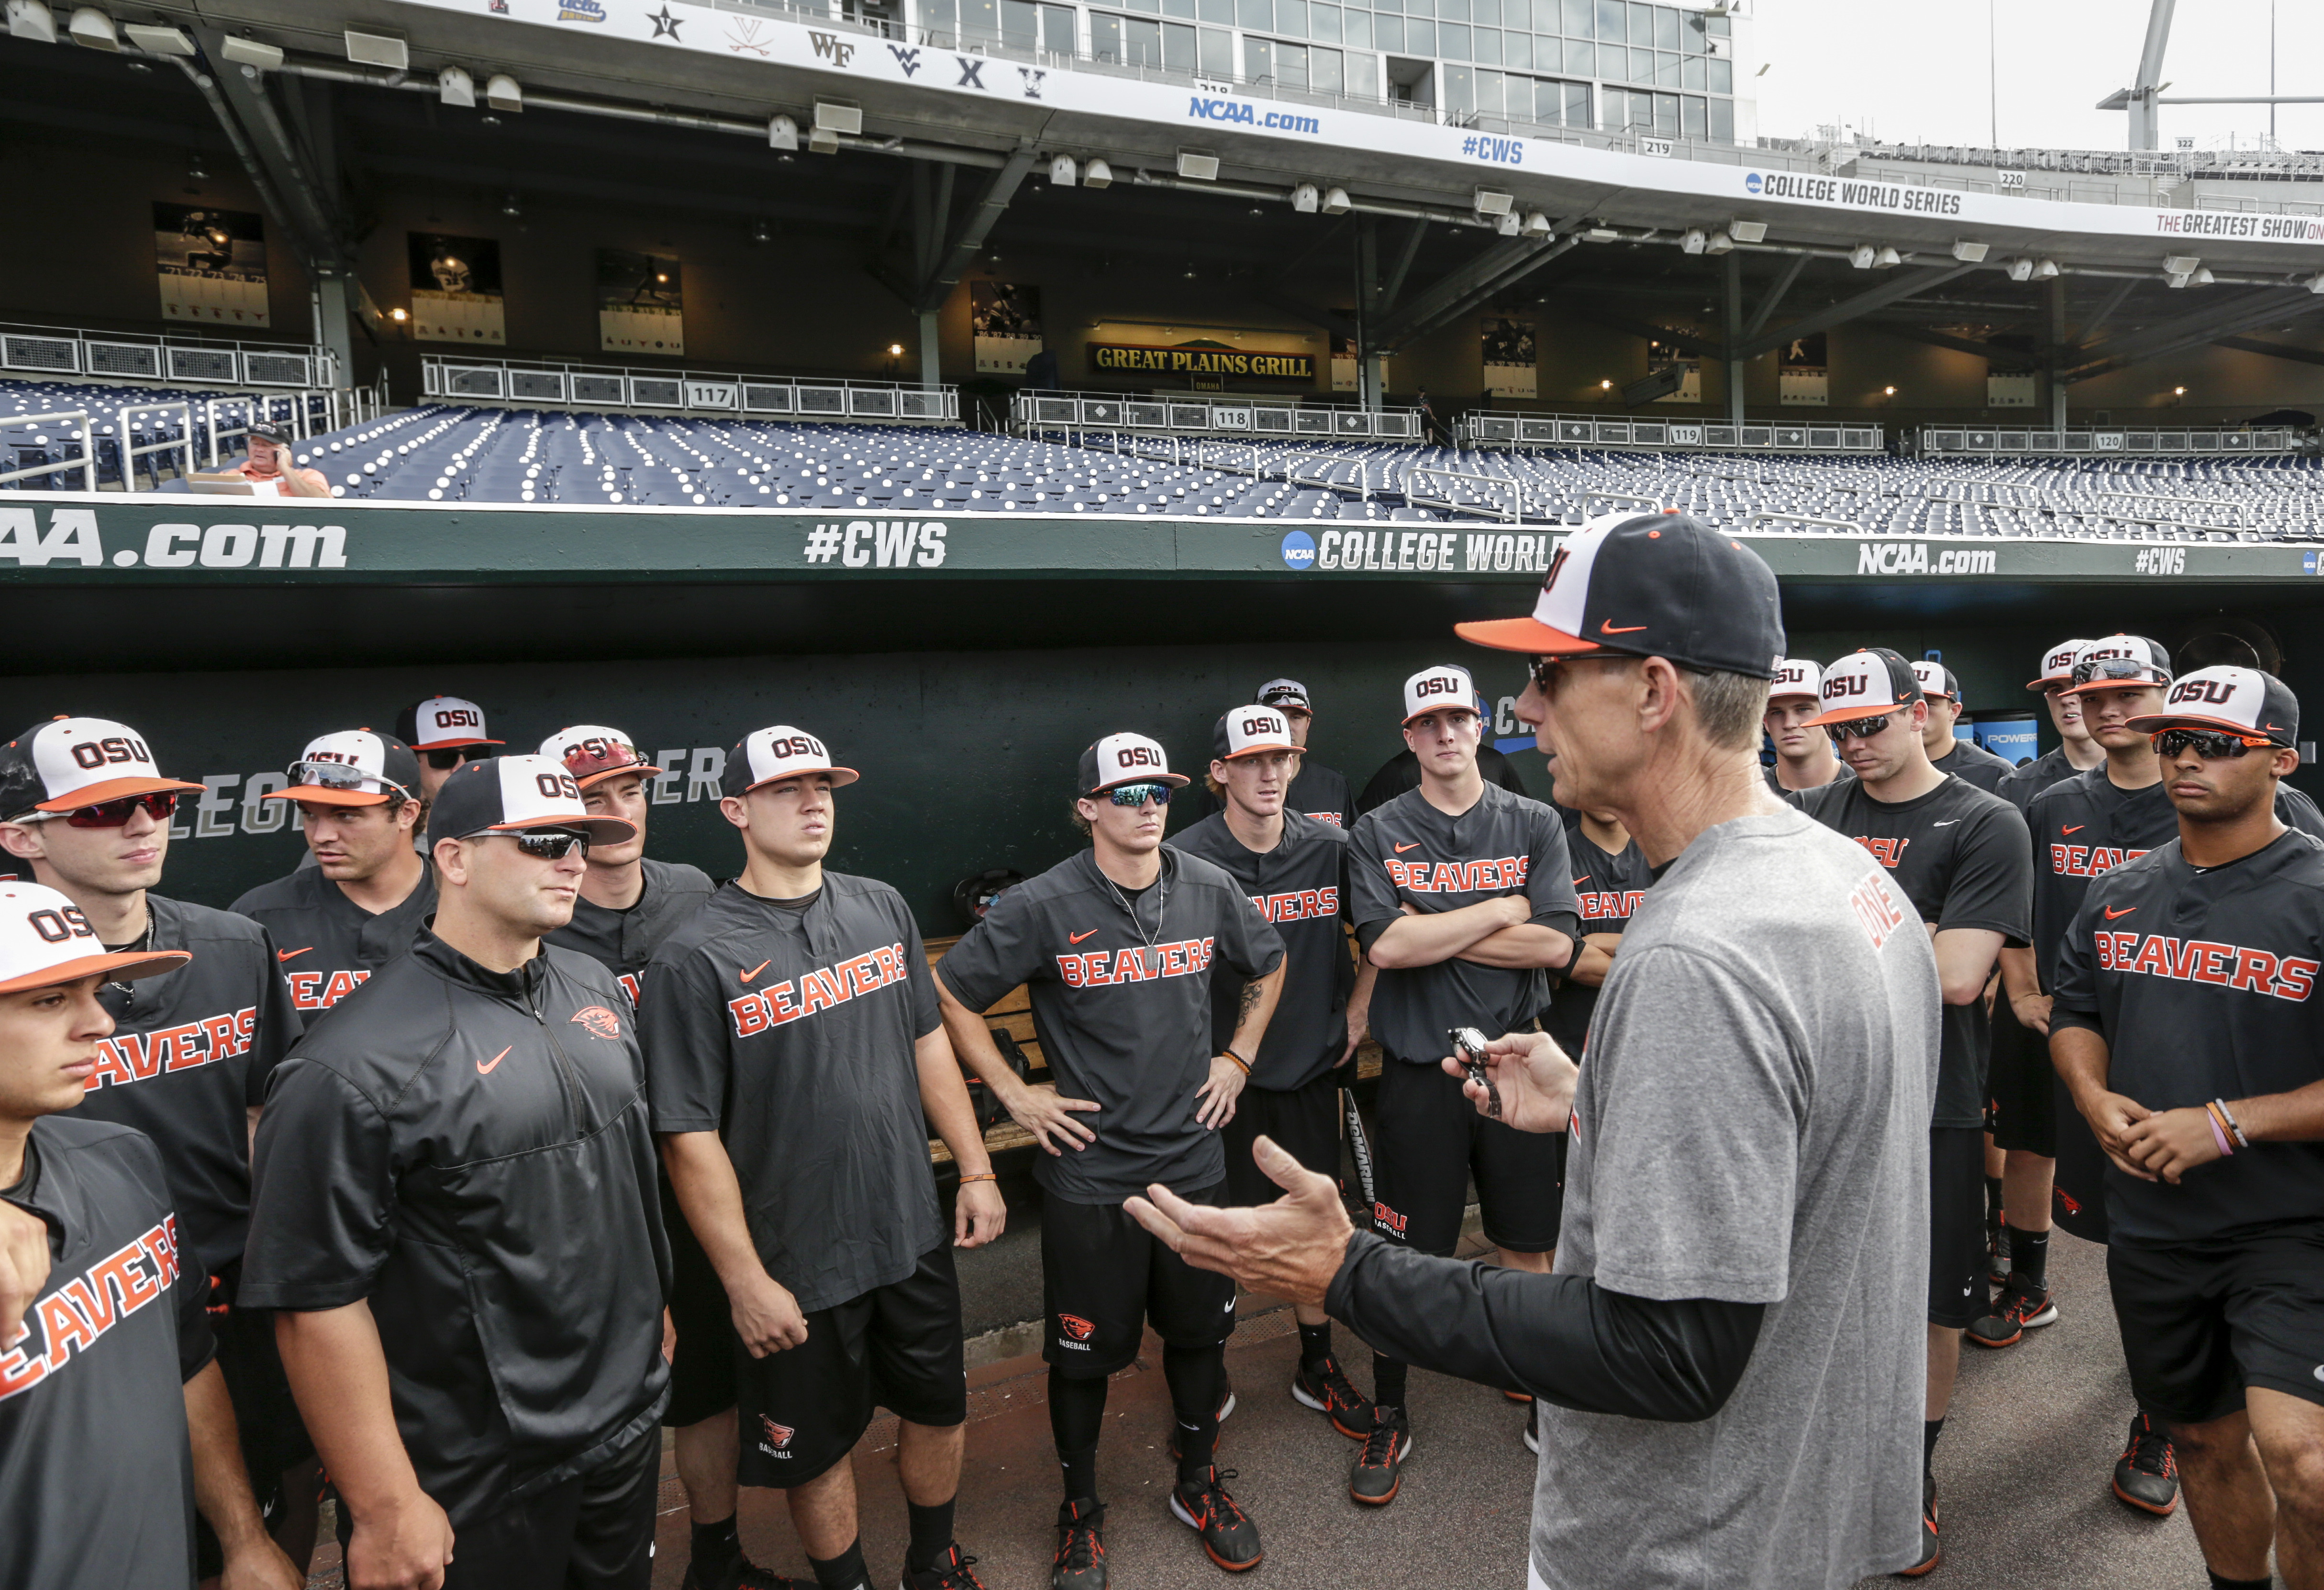 Oregon State coach Pat Casey addresses his players in the dugout before team practice in Omaha, Neb., Friday, June 16, 2017. Oregon State is on the cusp of joining the company of the greatest college baseball teams of all time. At 54-4, the Beavers enter the College World Series with the fewest losses of any team since 1982. (AP Photo/Nati Harnik)